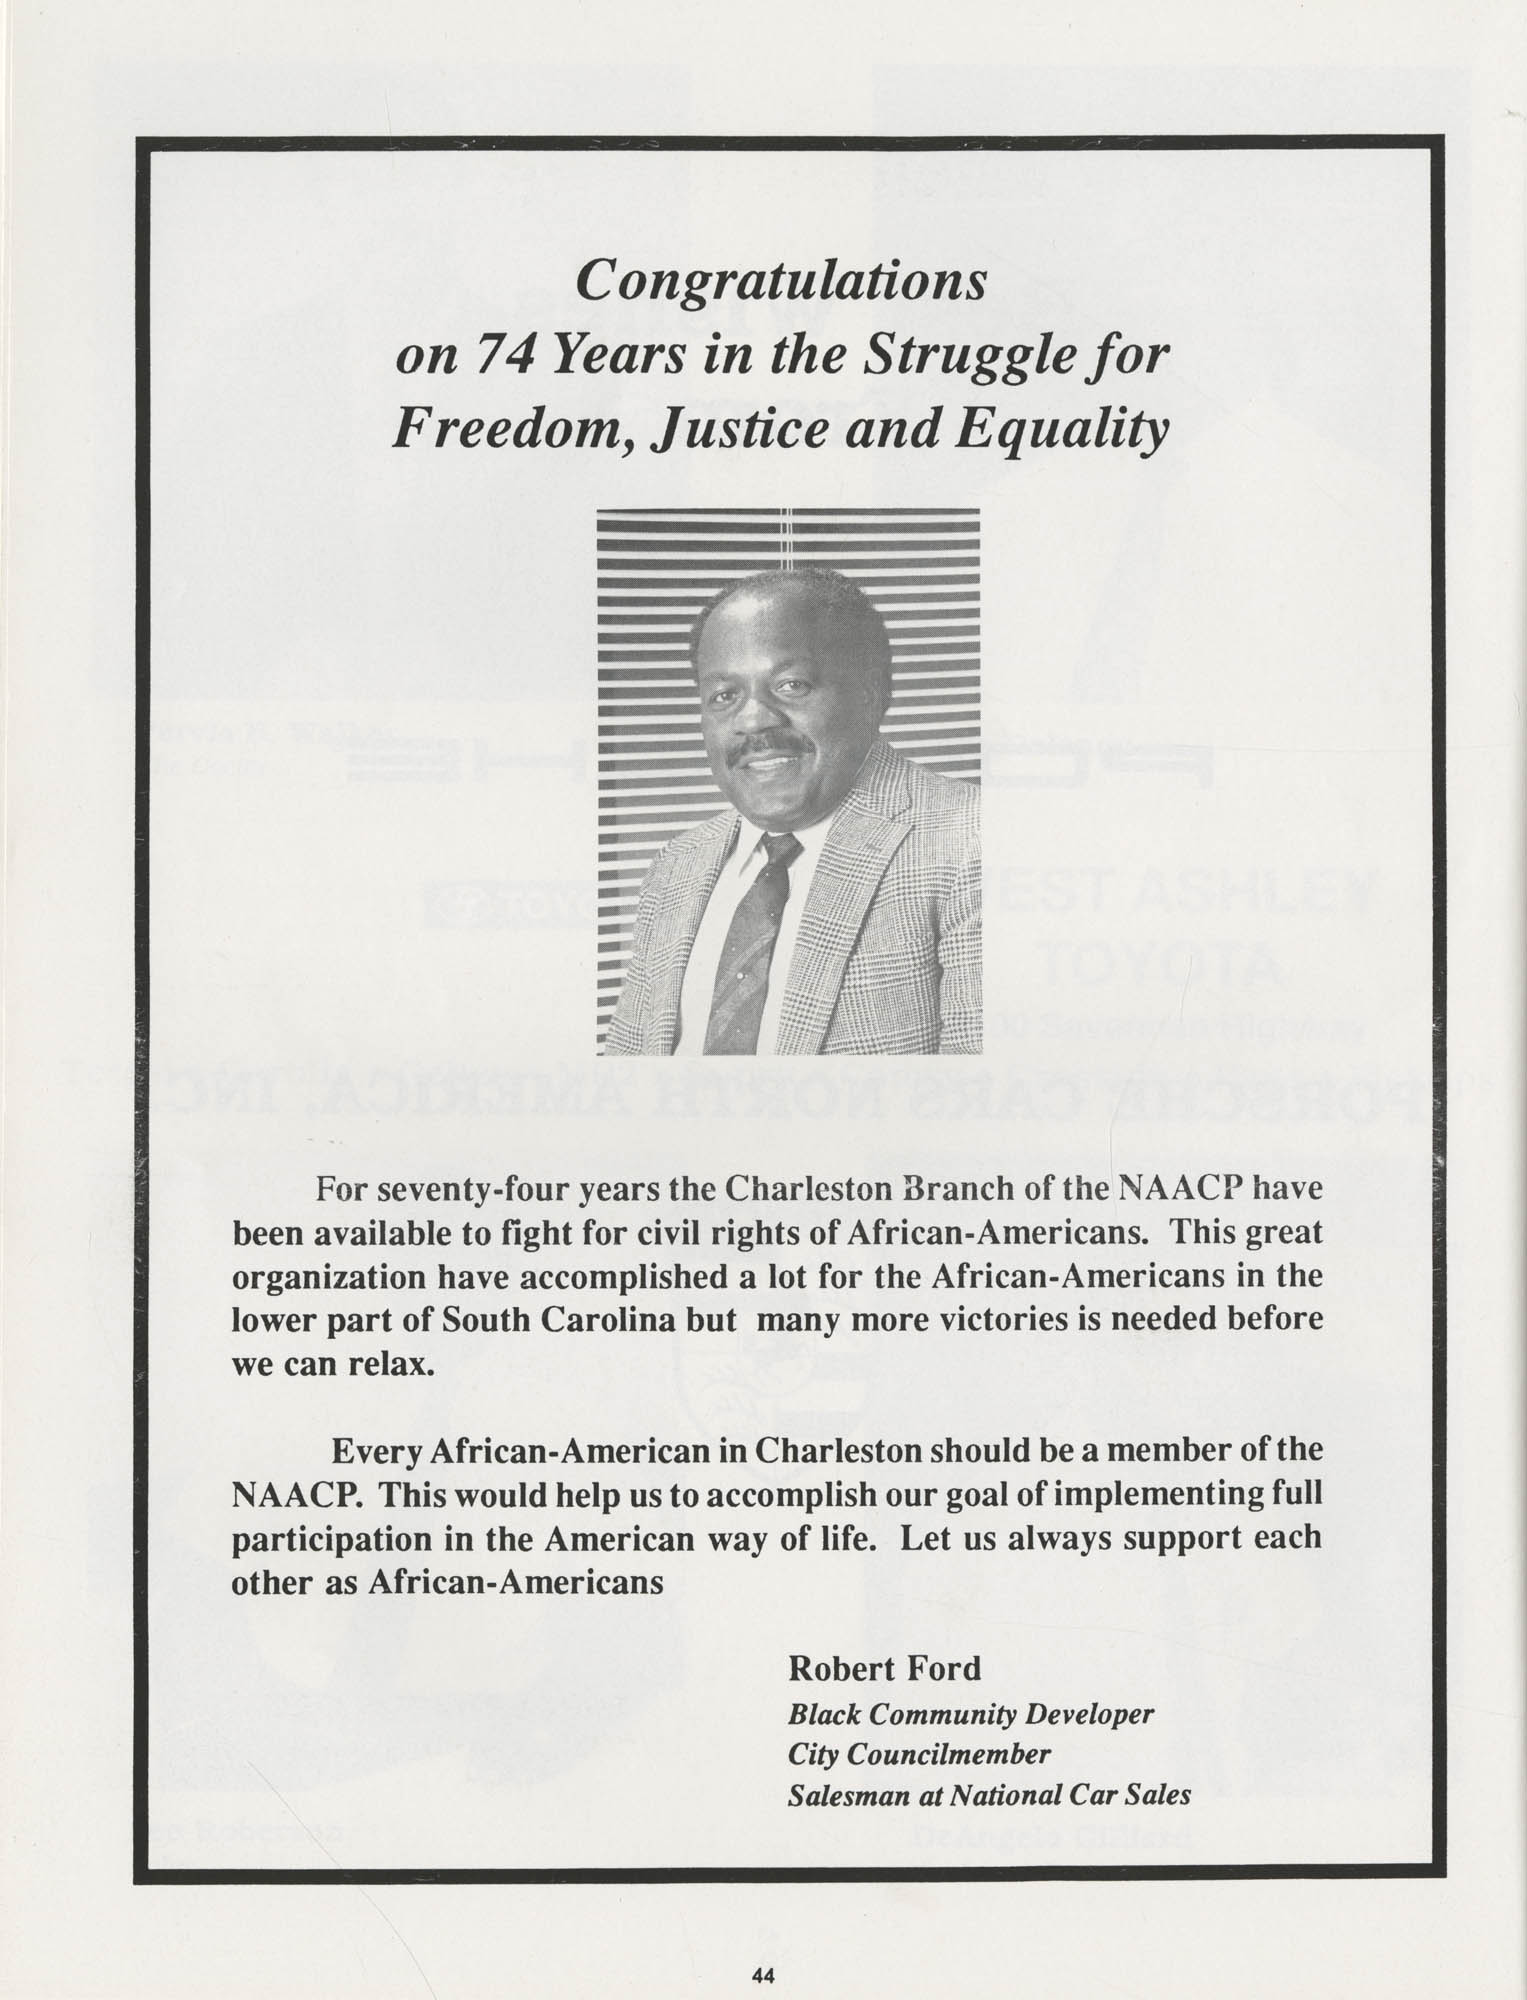 1990 NAACP Freedom Fund Magazine, Charleston Branch of the NAACP, 74th Anniversary, Page 44